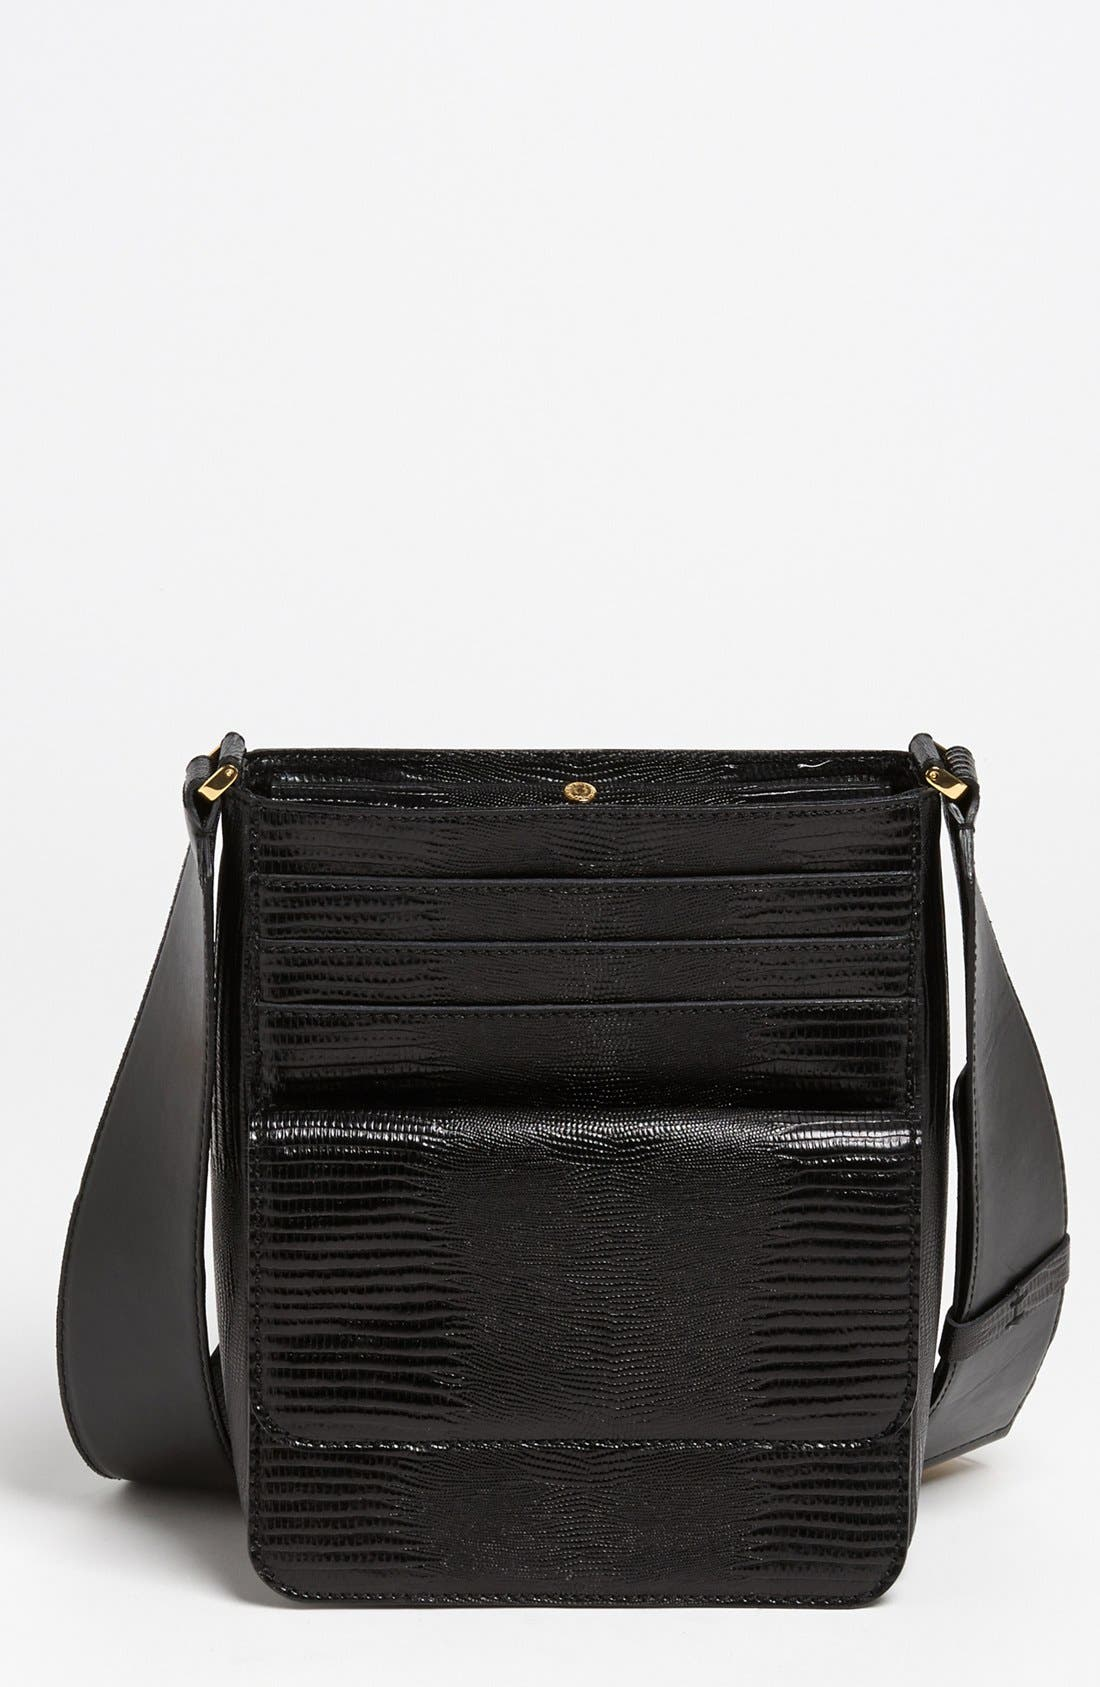 Main Image - Stella McCartney 'Tejus' Faux Leather Crossbody Bag, Small